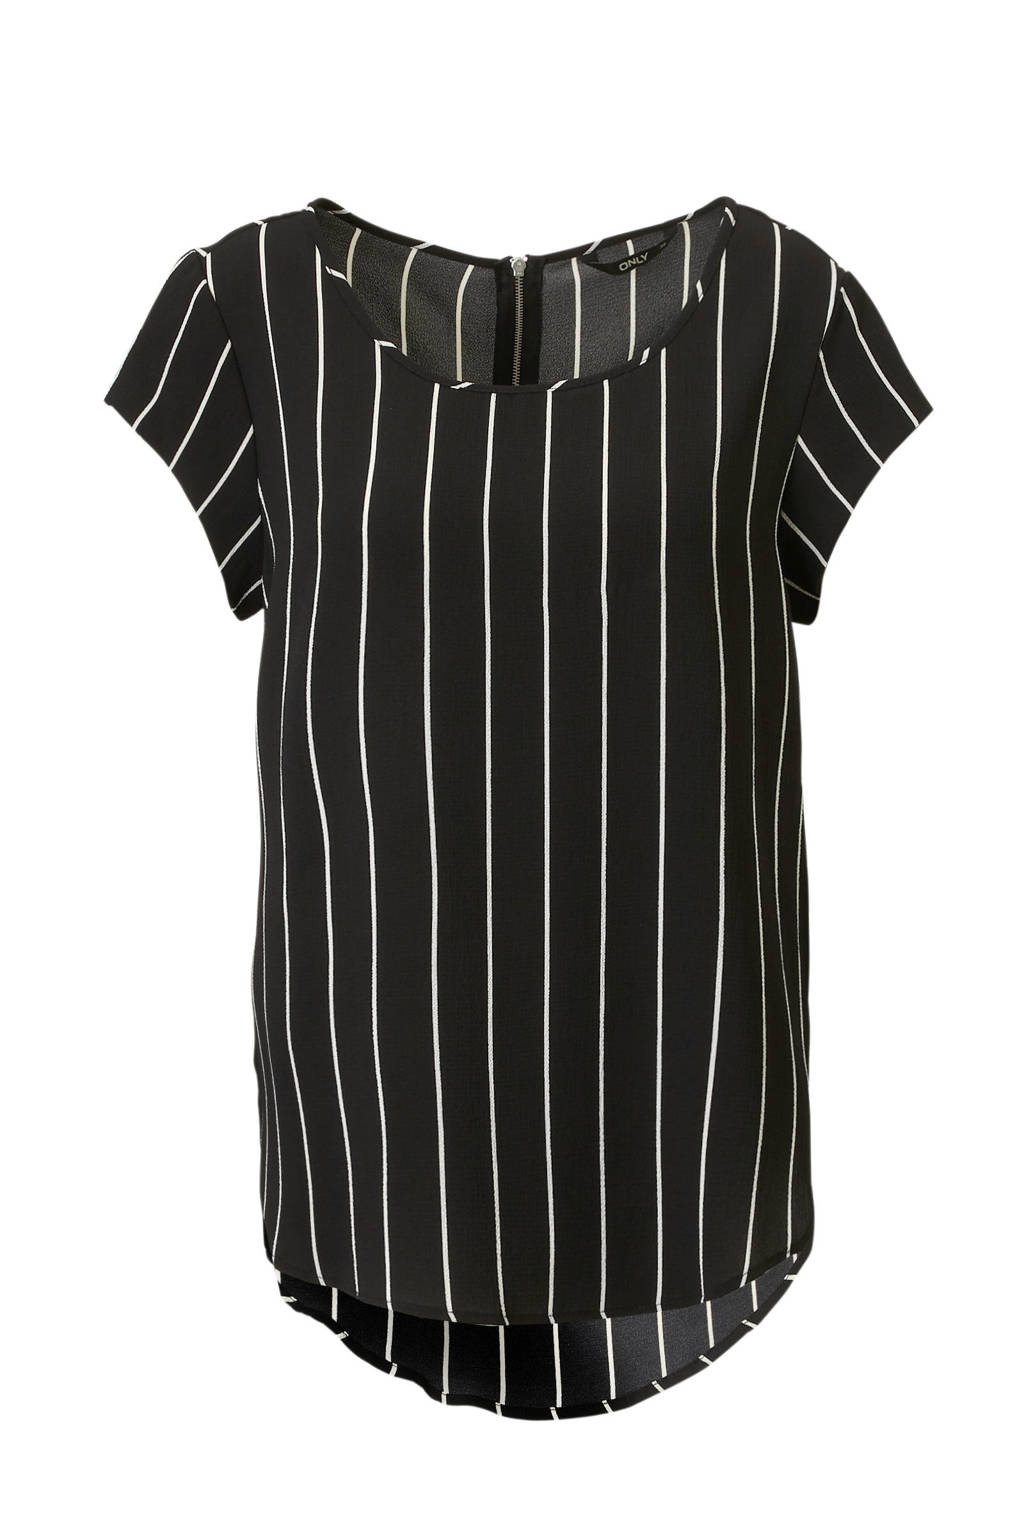 ONLY top met all over gestreepte print, Zwart/wit